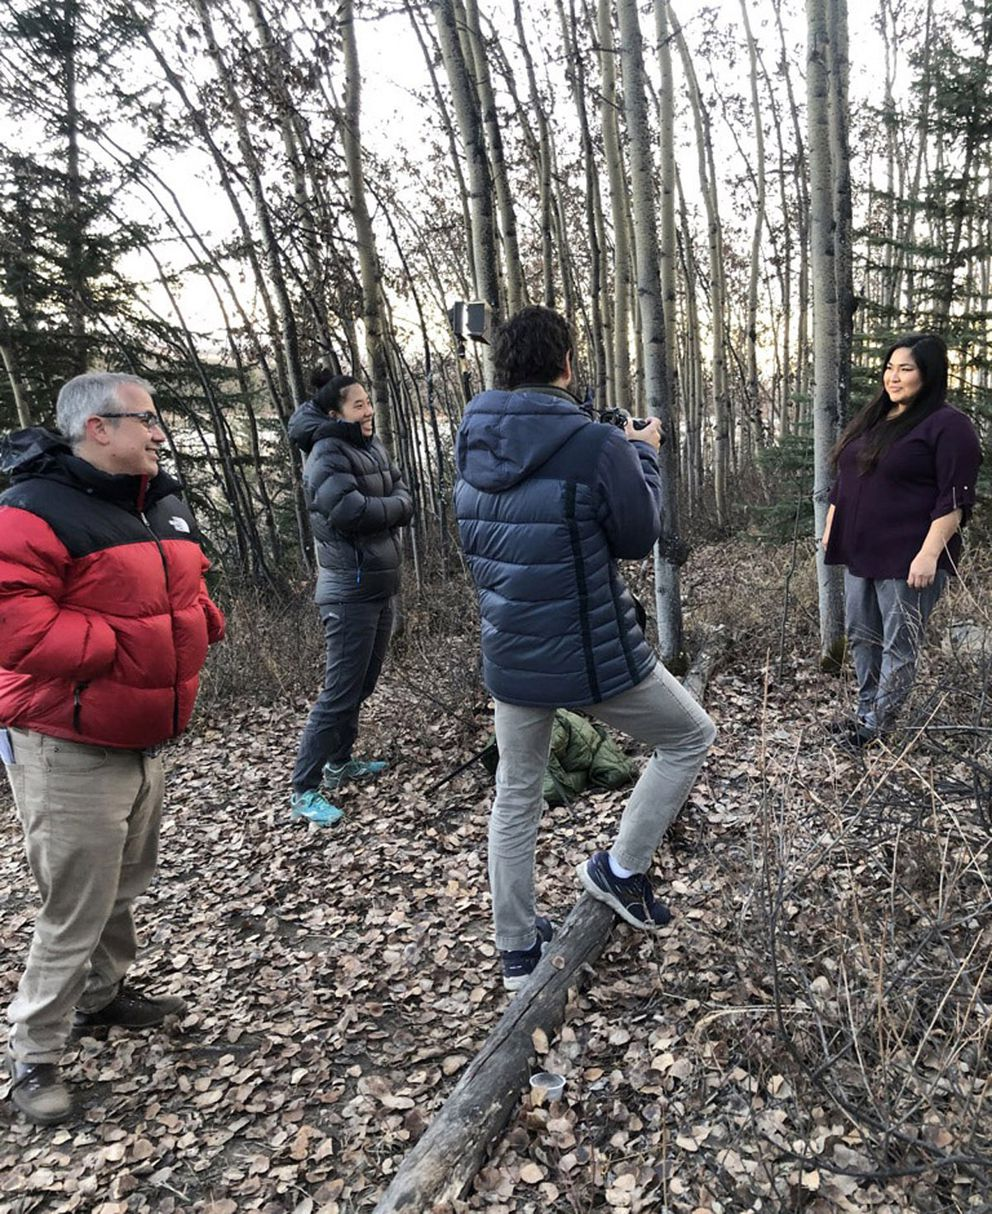 Left to right: Kyle Hopkins of the Anchorage Daily News, Agnes Chang of ProPublica, Loren Holmes of the Anchorage Daily News and Jessica Wilson at Chena Ridge in Fairbanks. Holmes was photographing Wilson for the Unheard series. (Adriana Gallardo/ProPublica)